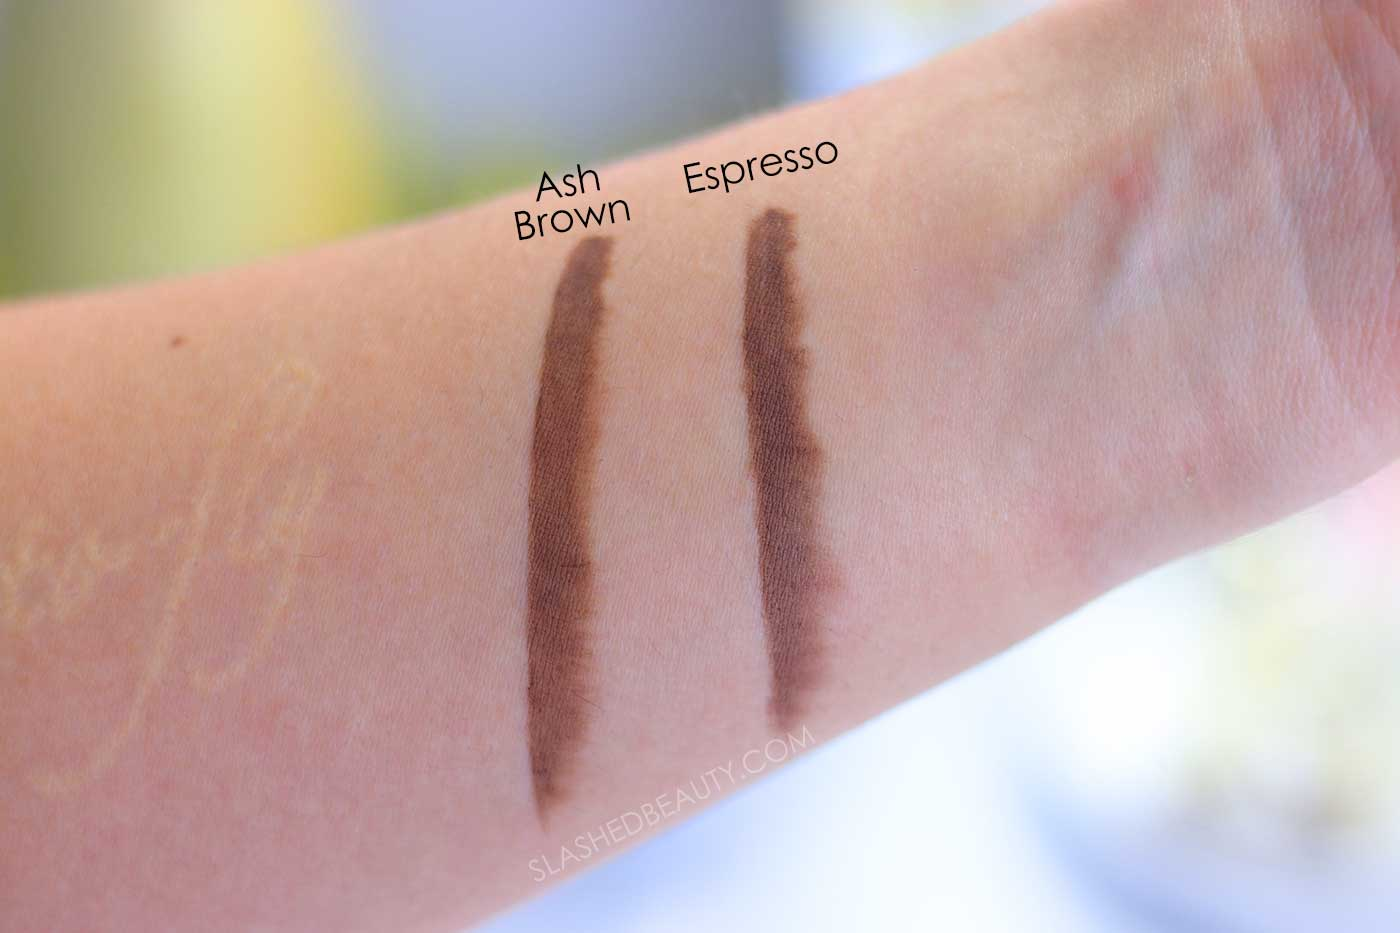 NYX Dip, Shape, Go! Brow Pomade Swatches: Ash Brown & Espresso | Slashed Beauty